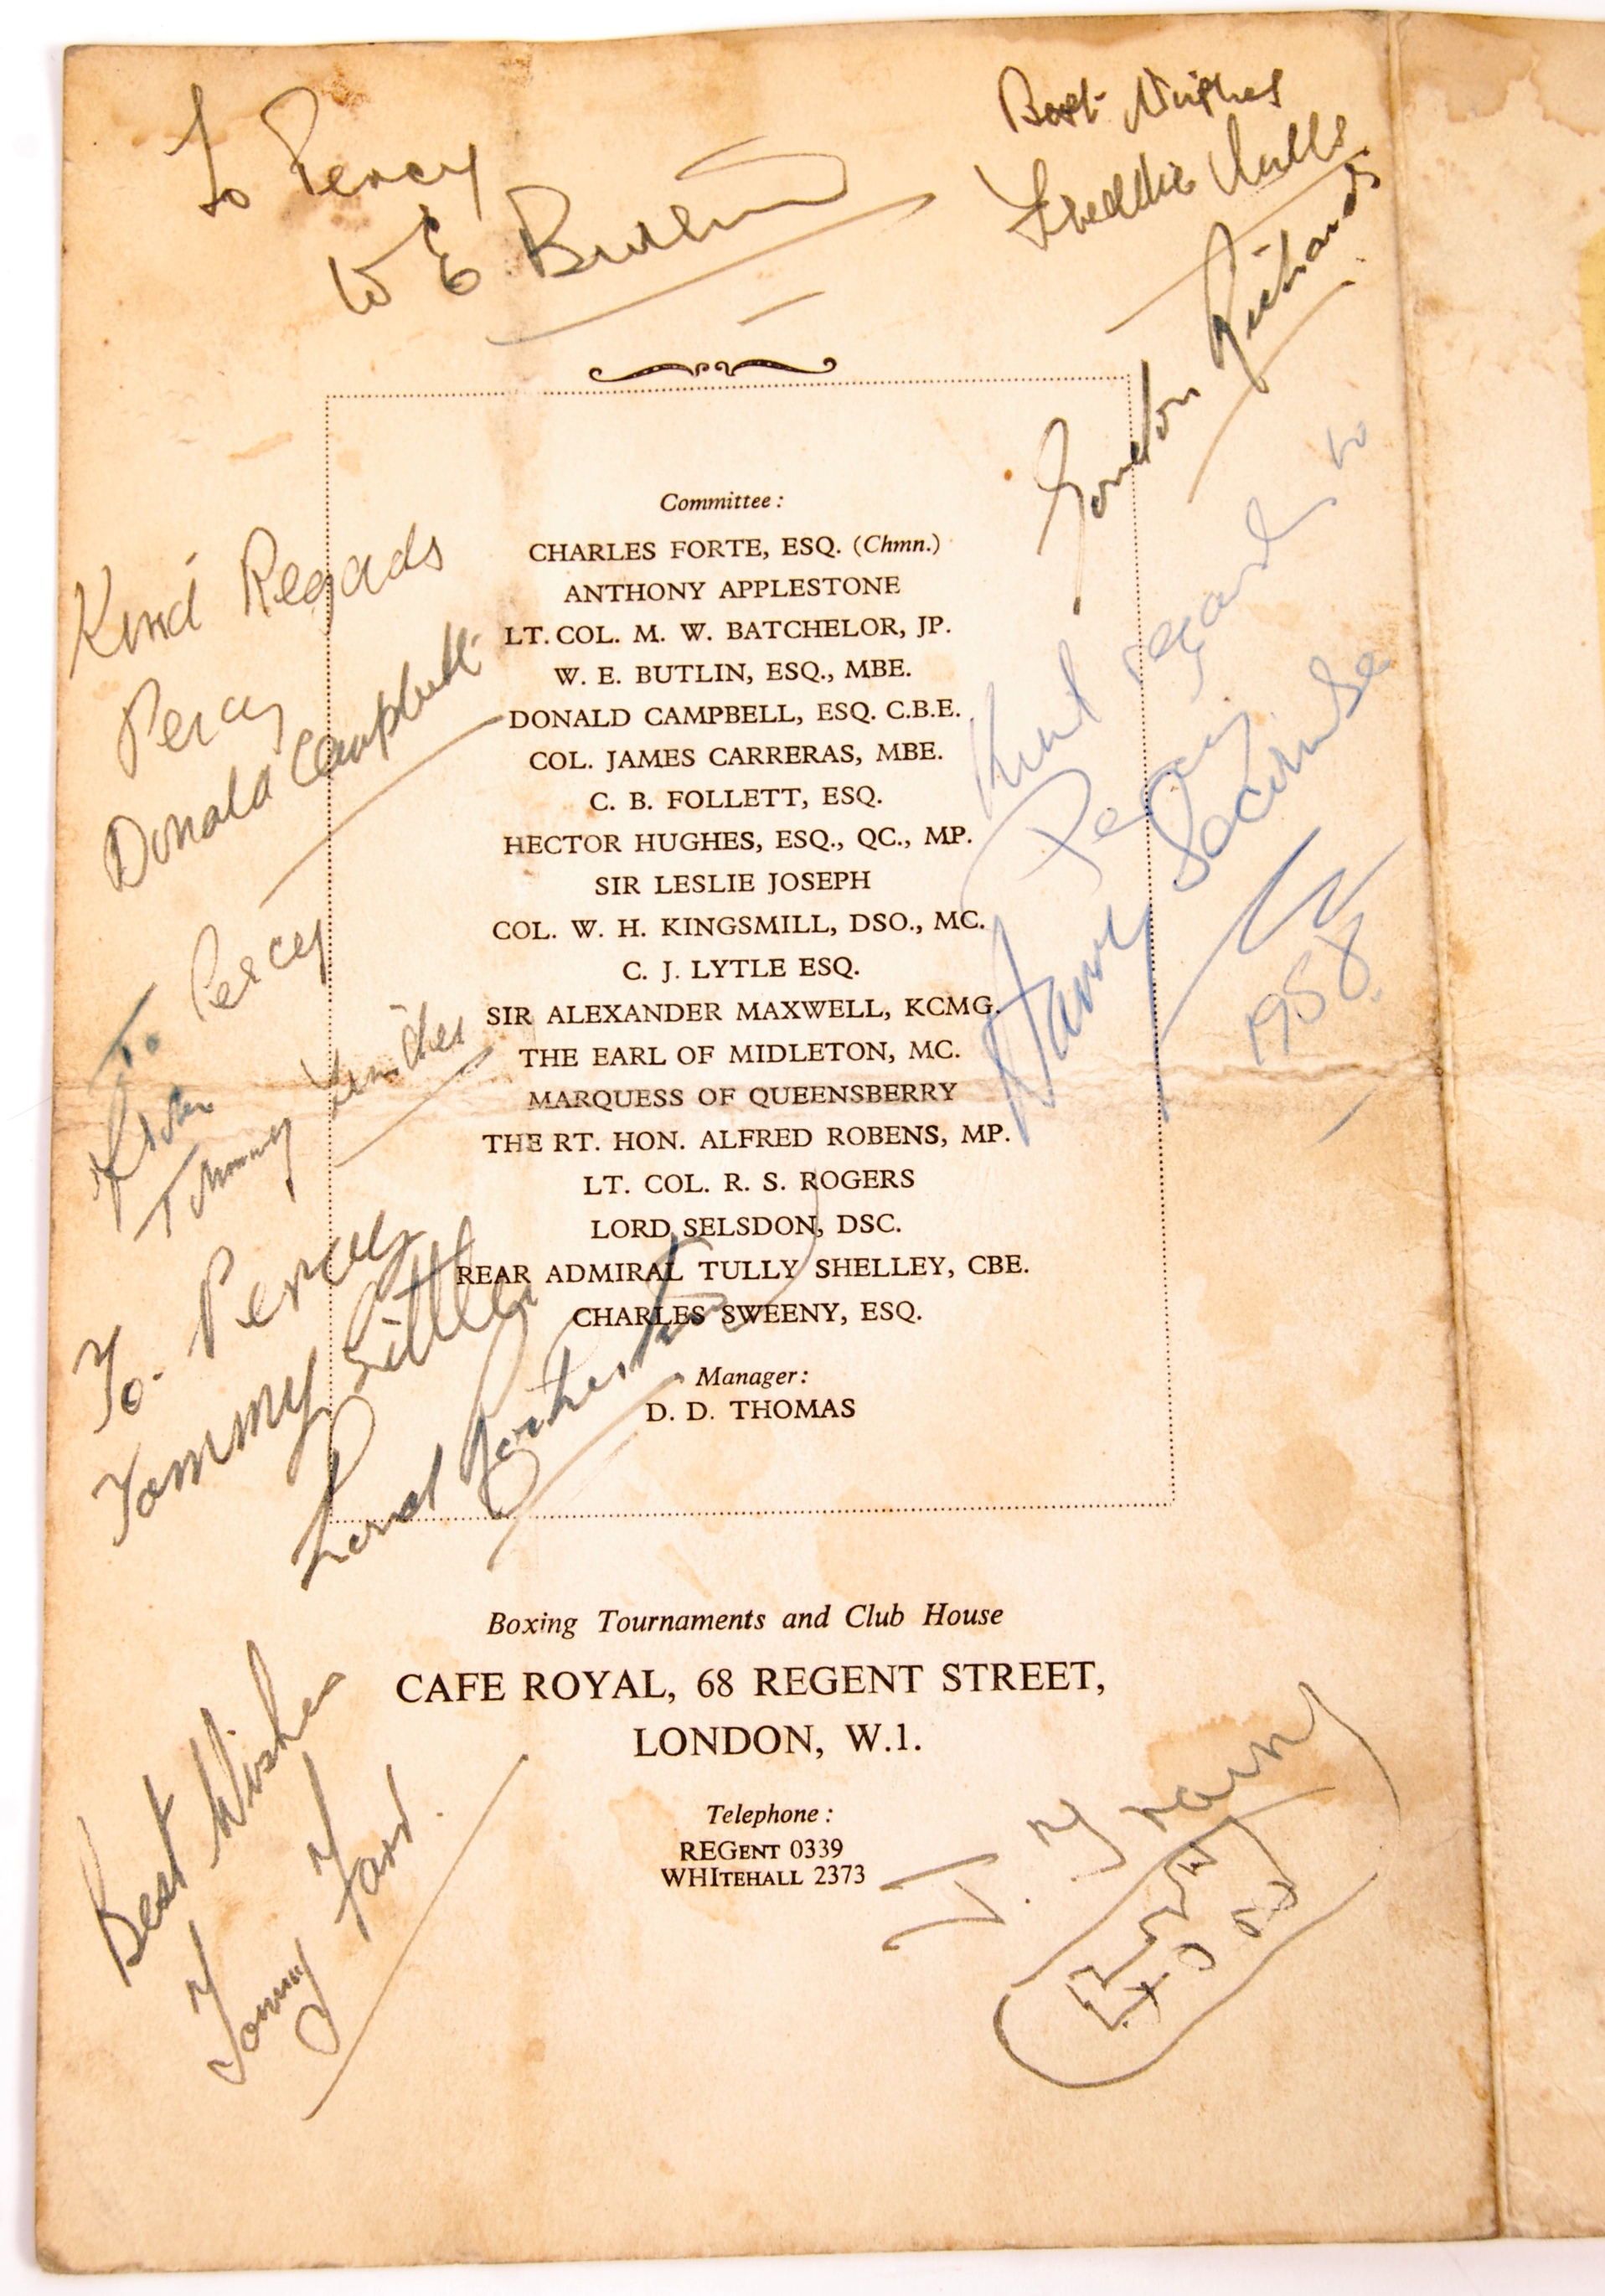 Lot 84 - RARE 1950'S BOXING PROGRAMME AUTOGRAPHED BY THOSE